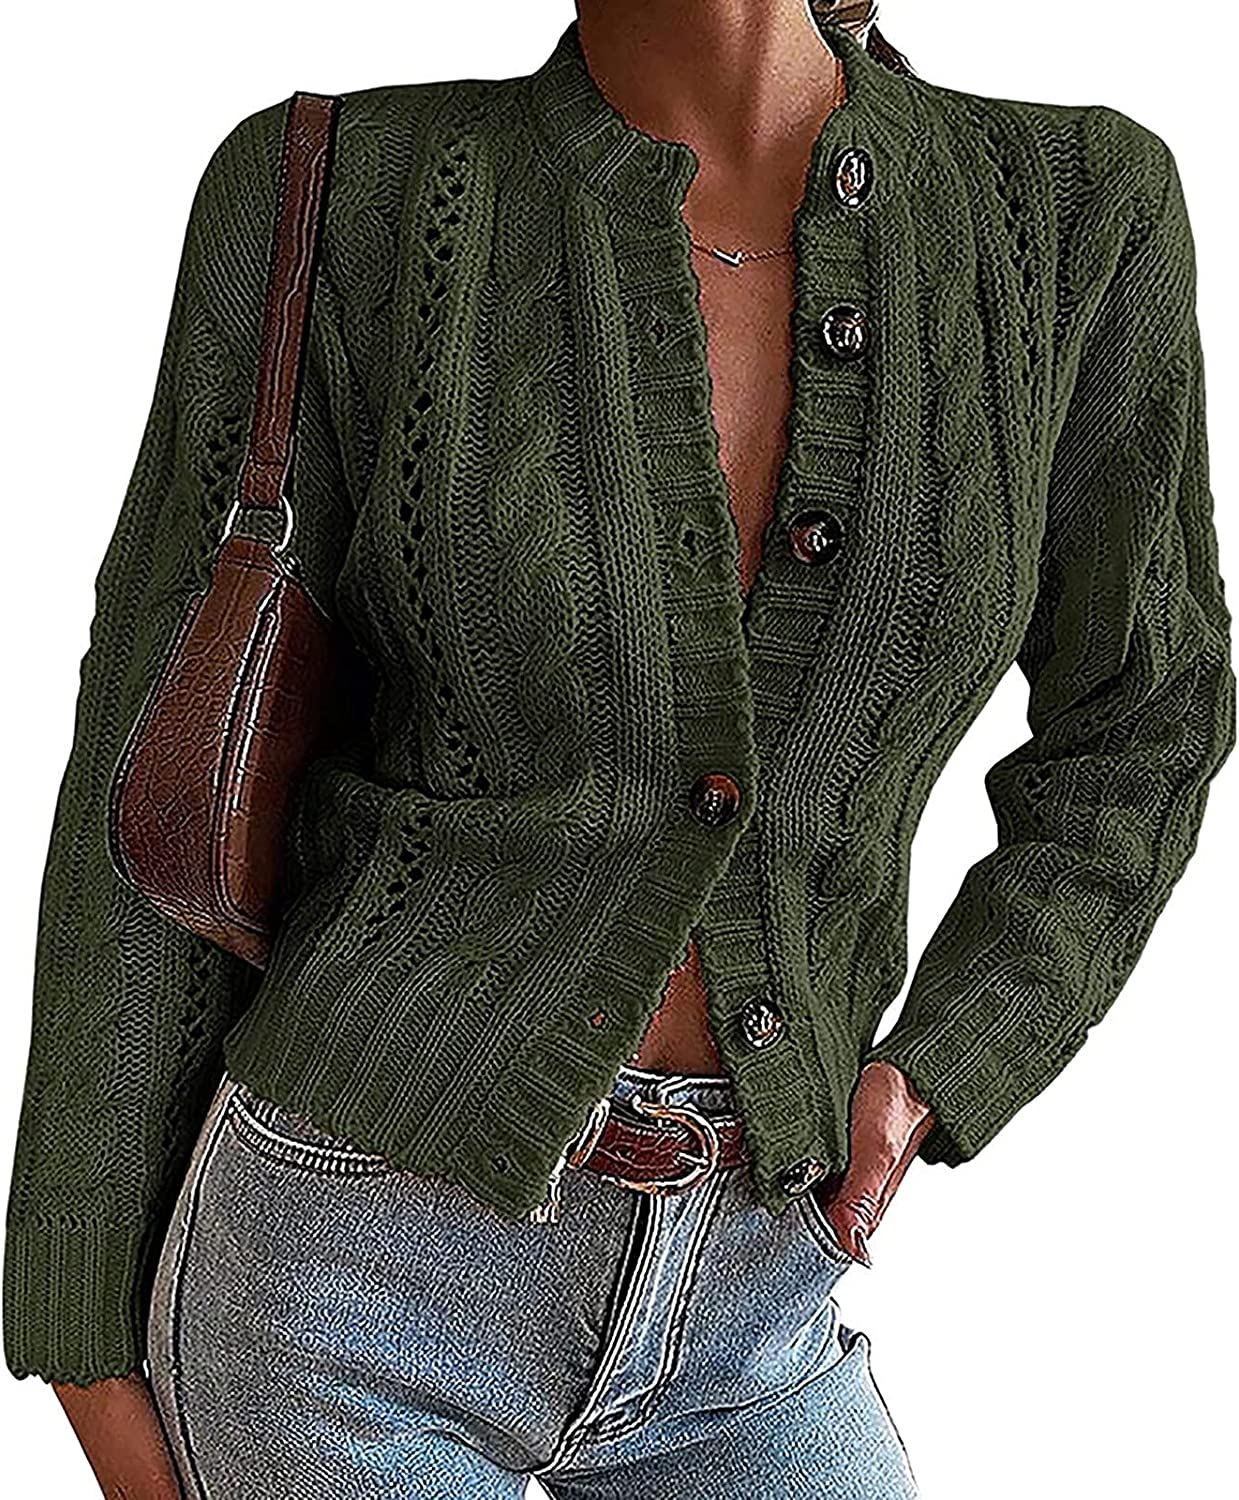 Women's Winter Button Down Jacket Casual Fashion Cable Knit Sweater Cardigan Long Sleeve Lightweight Loose Tops